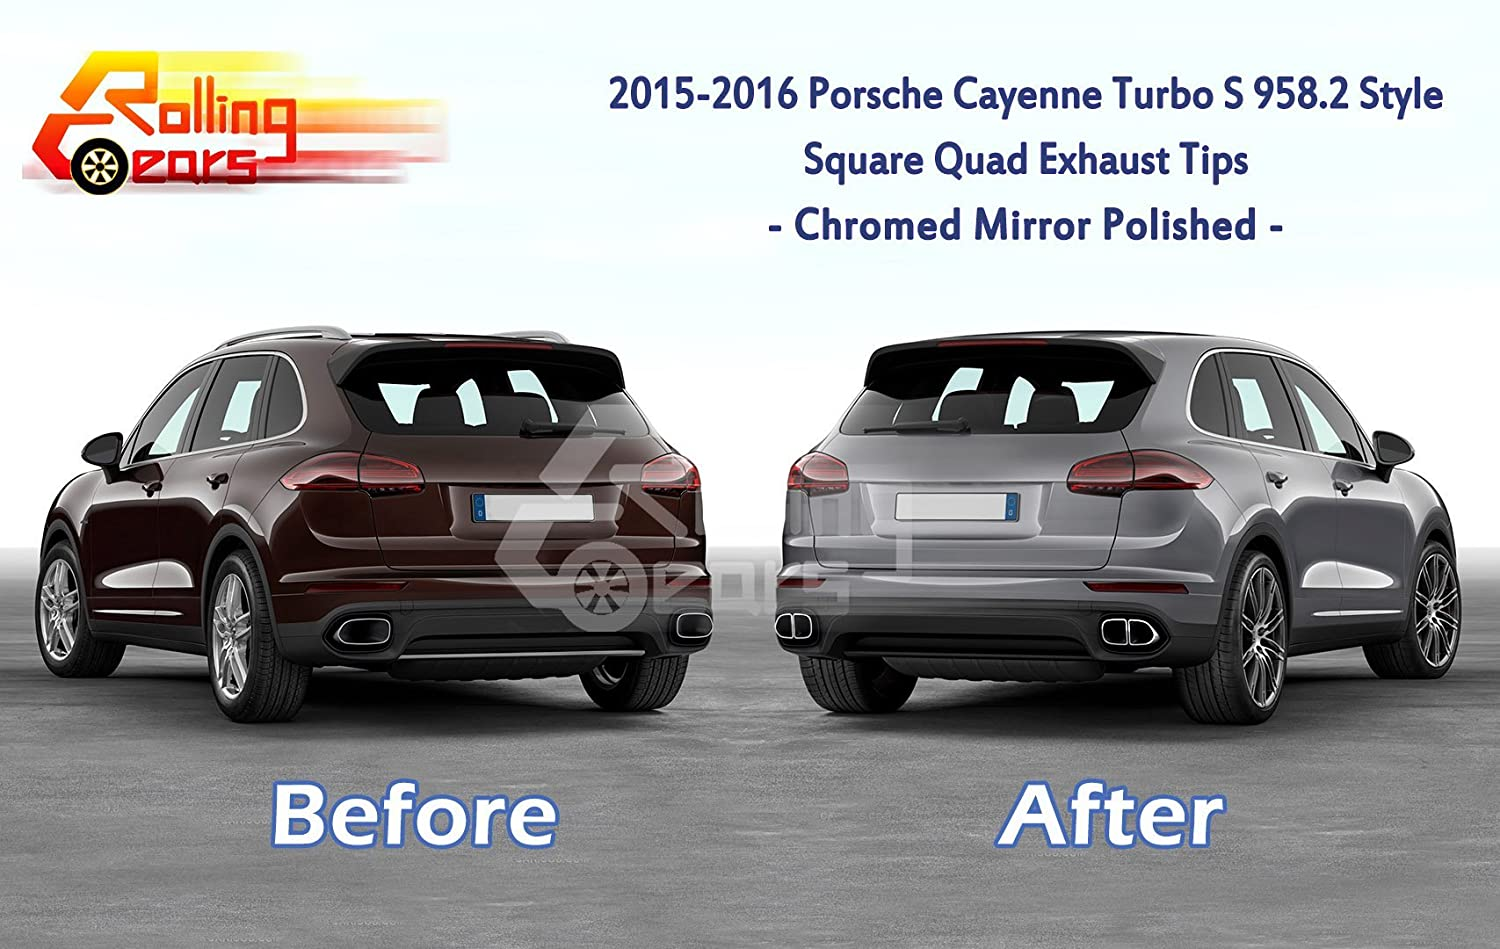 Amazon.com: Turbo-Look Exhaust Muffler Pipes for Cayenne 958.2 V6 Engine 2015-17, Square Quad Style (Chrome): Automotive